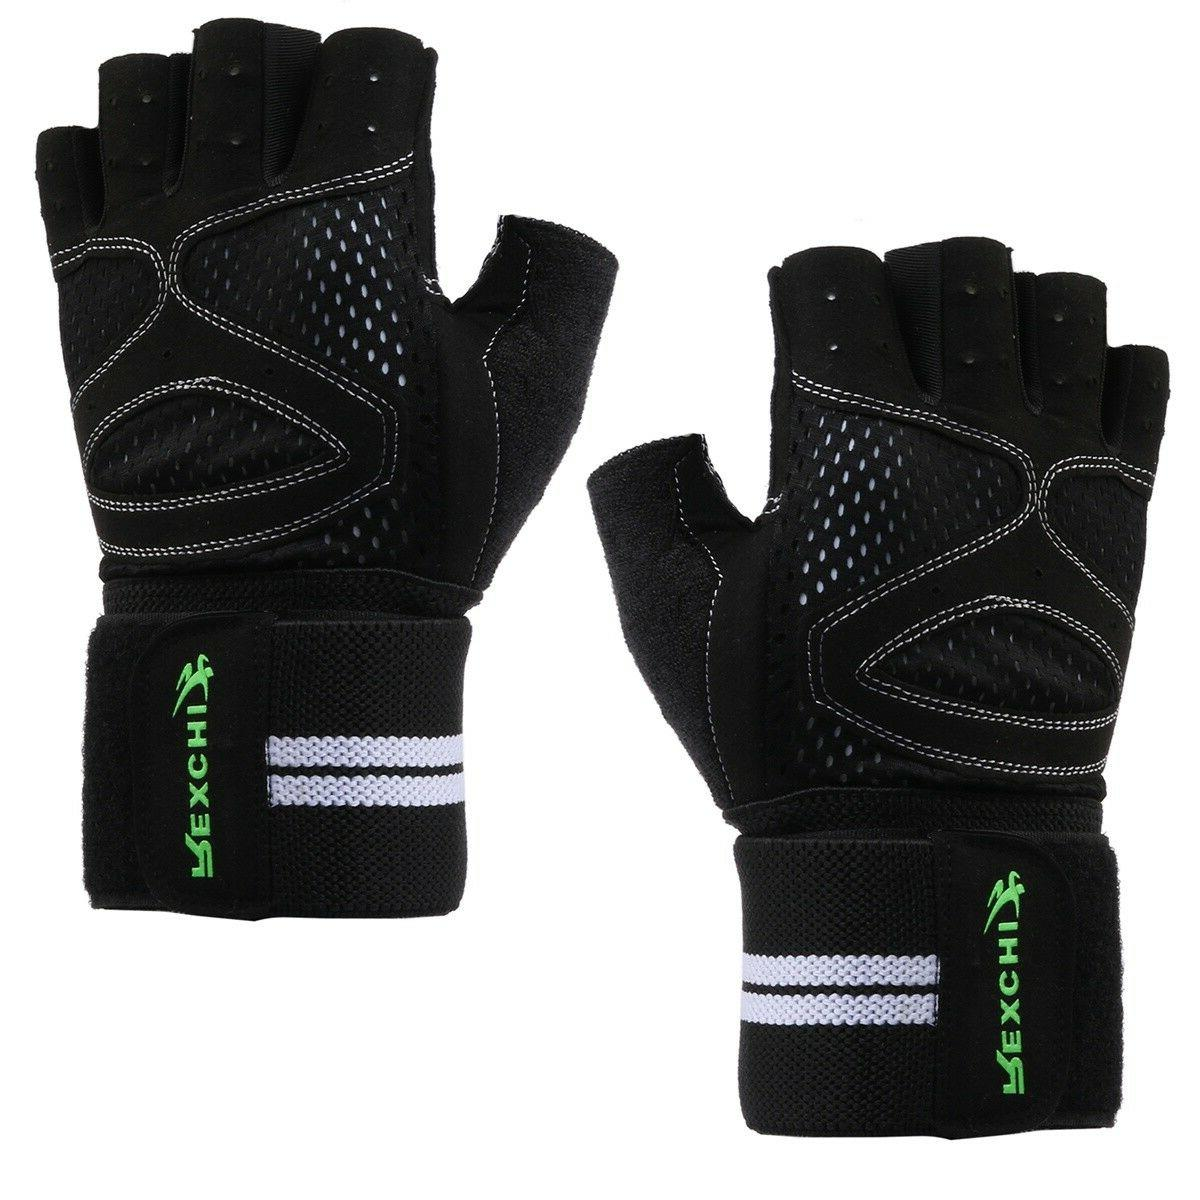 training grip wrist wrap weightlifting gloves full